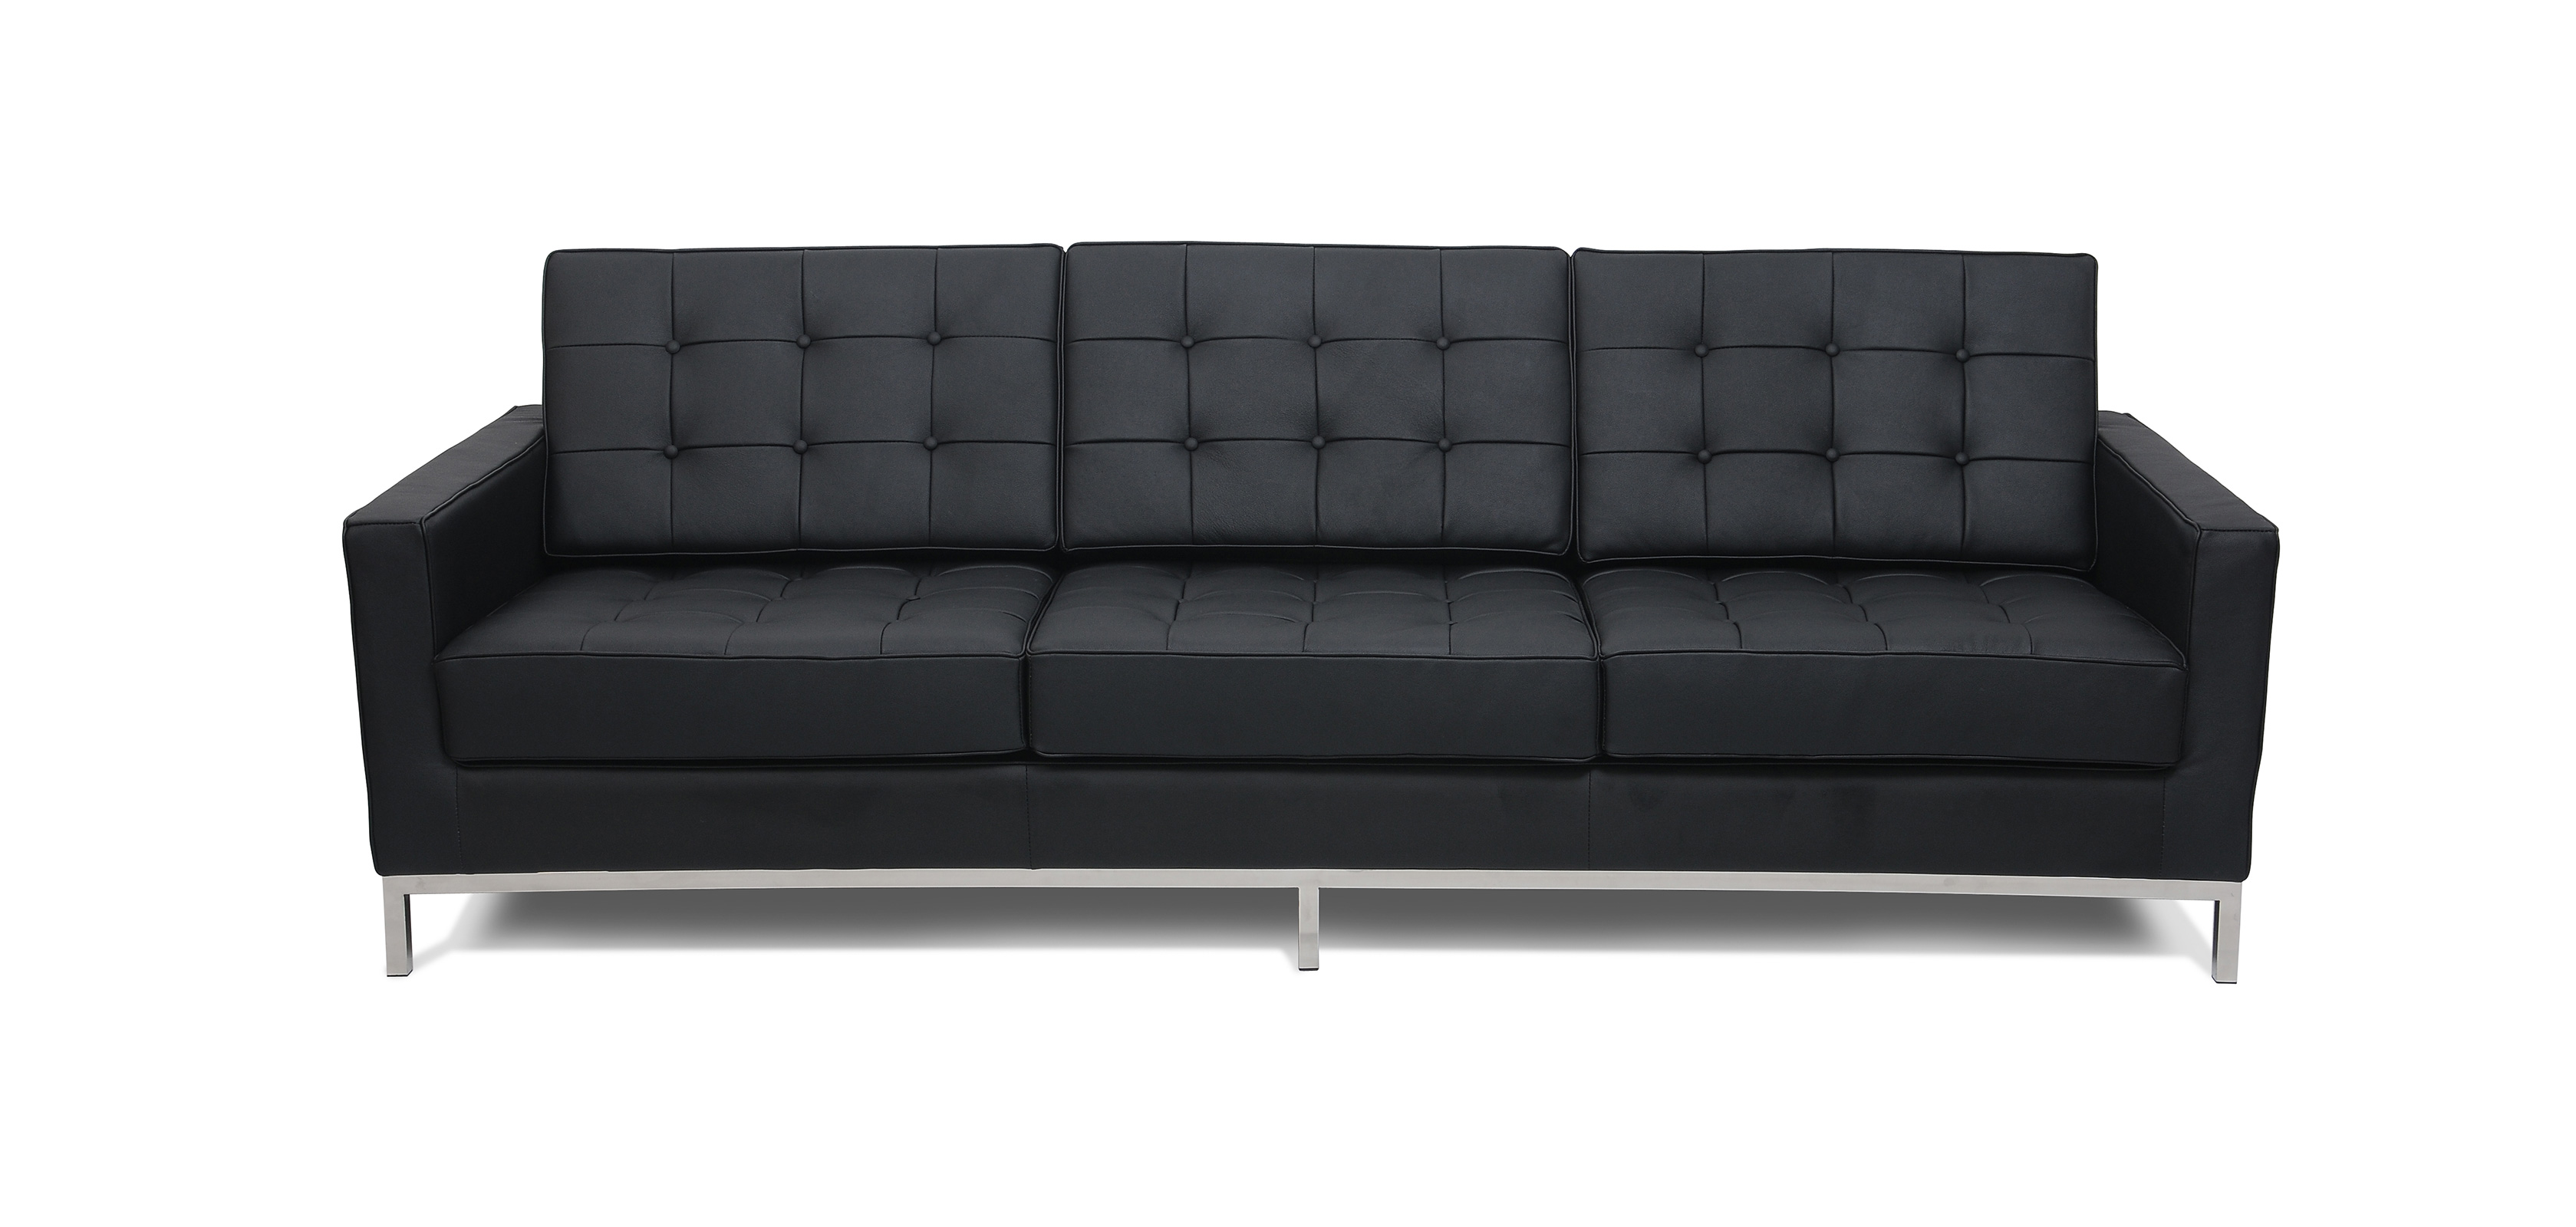 Design Sofa Florence Knoll style 3 seats Faux Leather 3